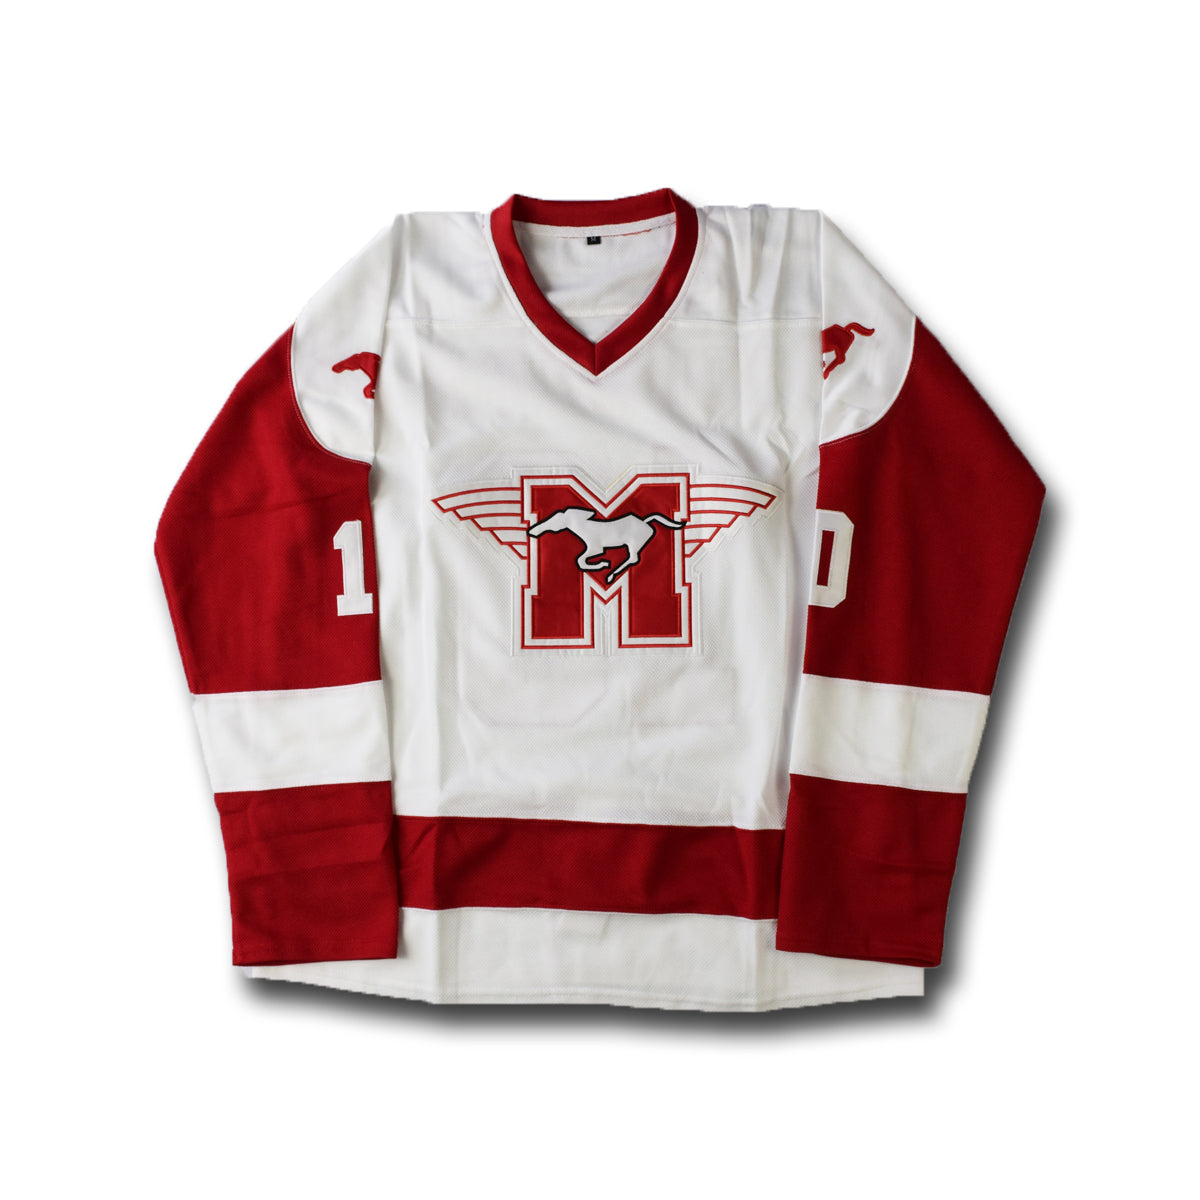 Youngblood  10 White Hockey Jersey f3adce0bd6